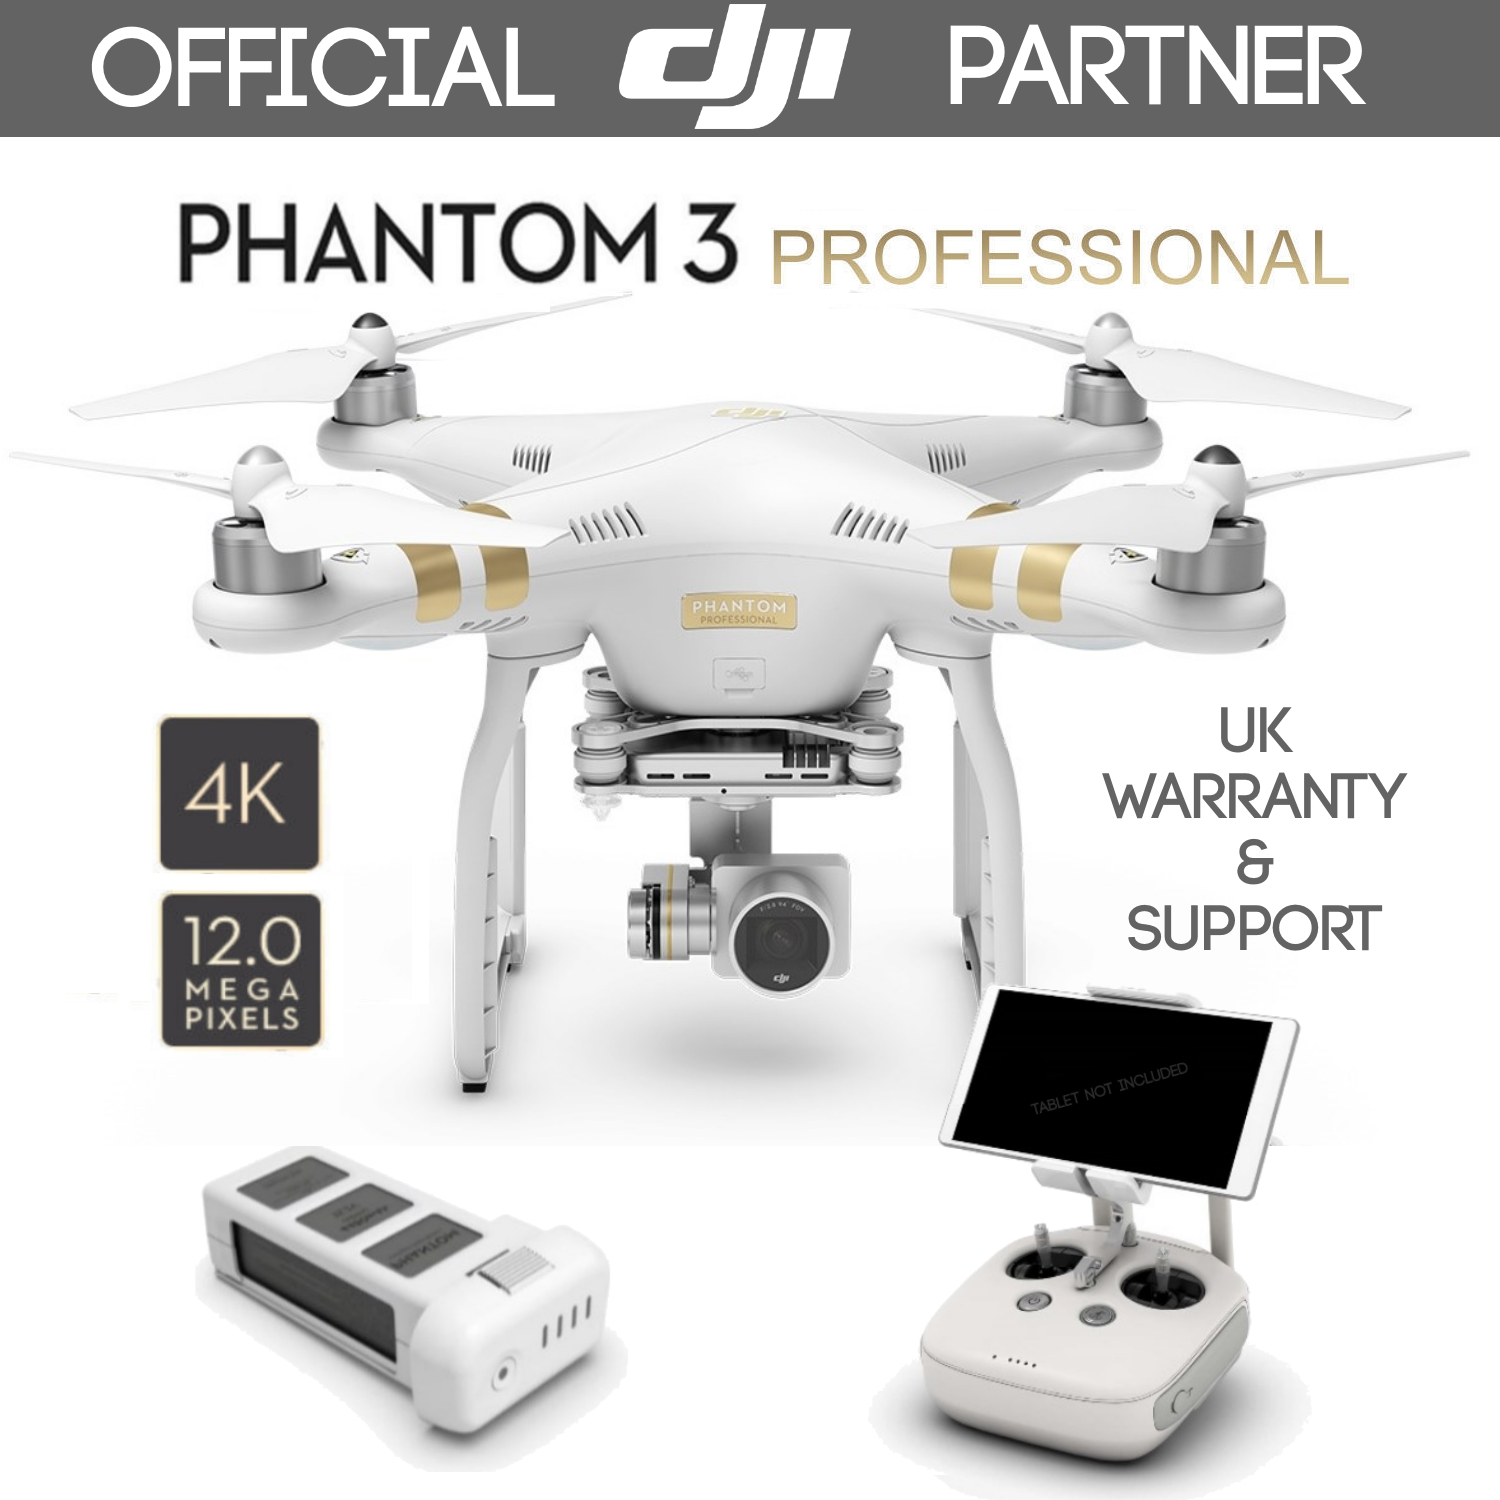 DJI Phantom 3 Professional Gold Quadcopter Drone With UHD 4K 12MP ...